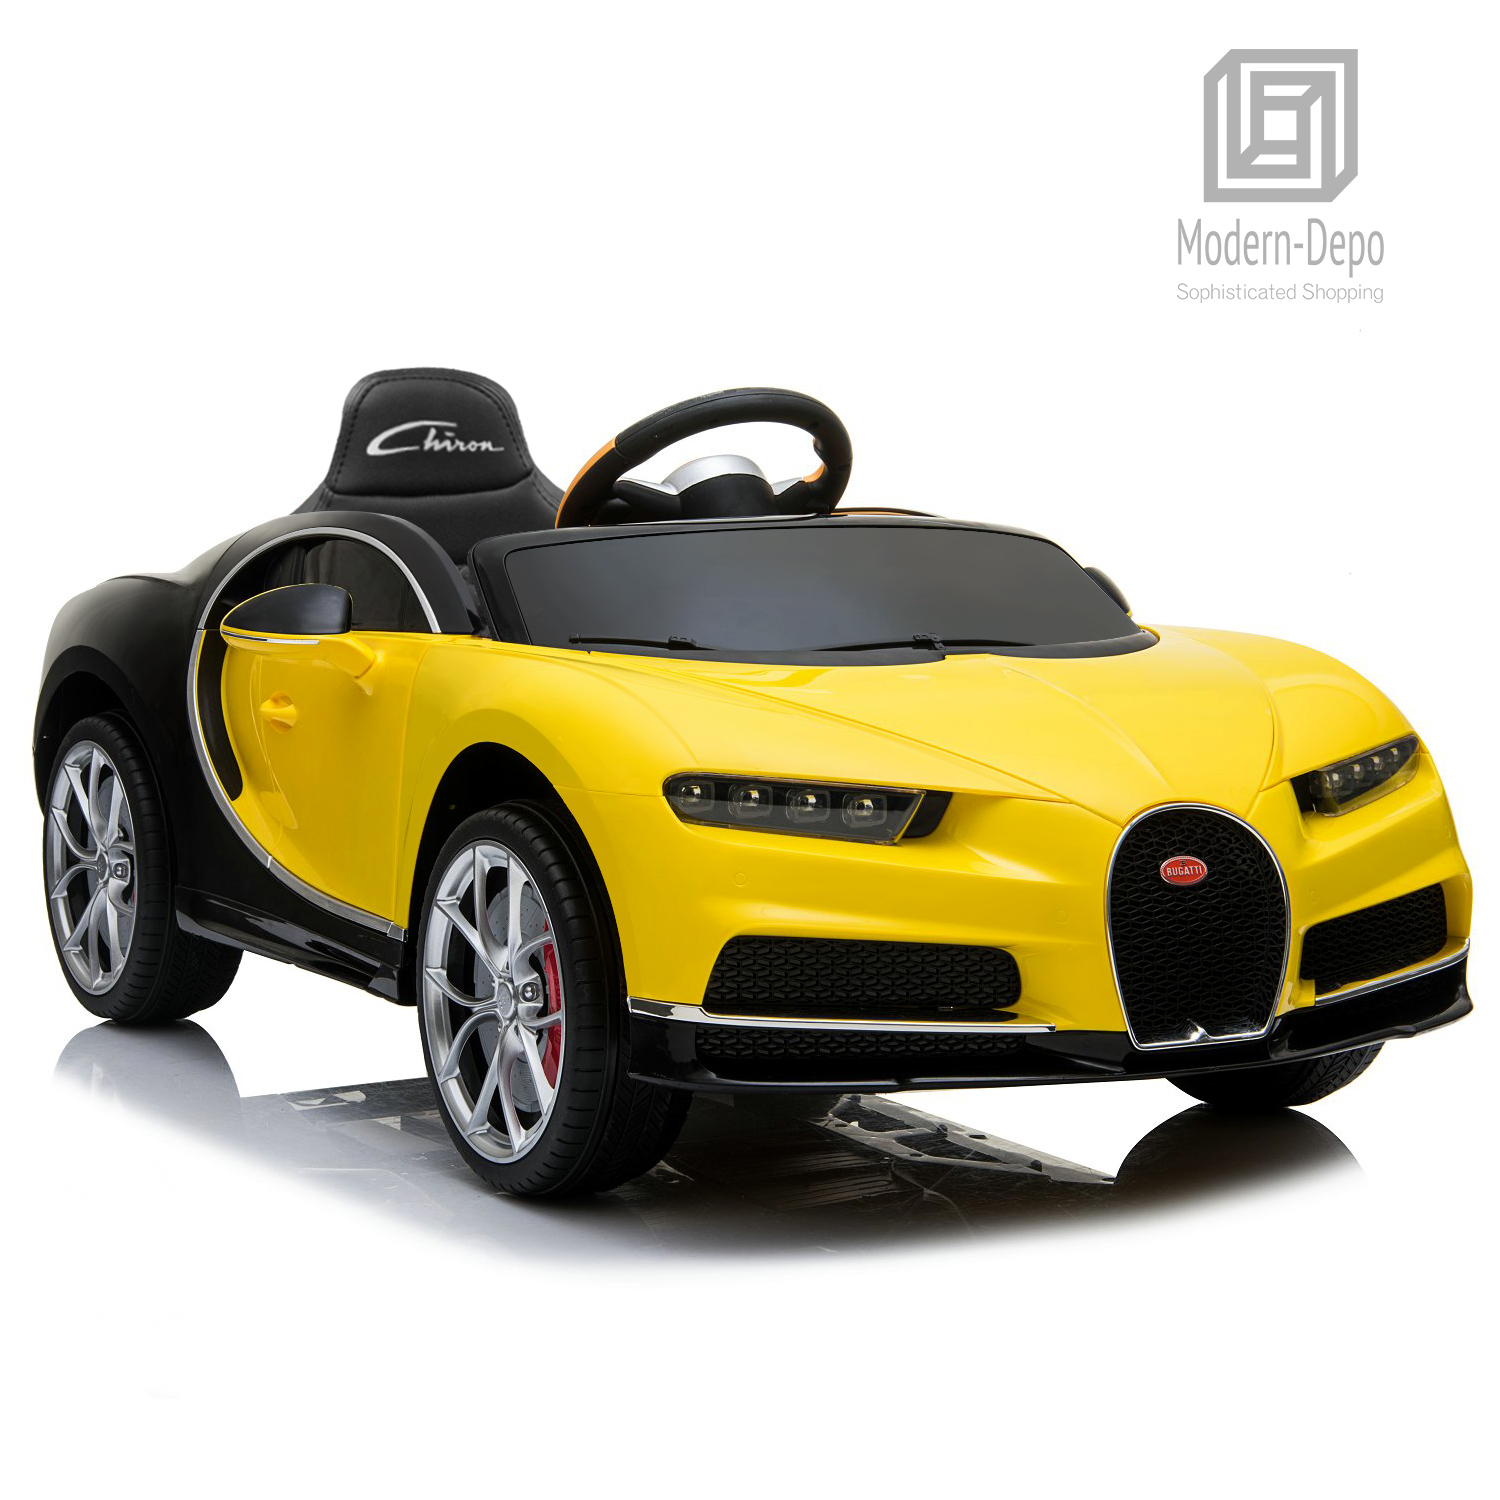 Bugatti-Chiron-12V-Kids-Ride-On-Car-with-Remote-Control-High-Speed-Motor miniature 49